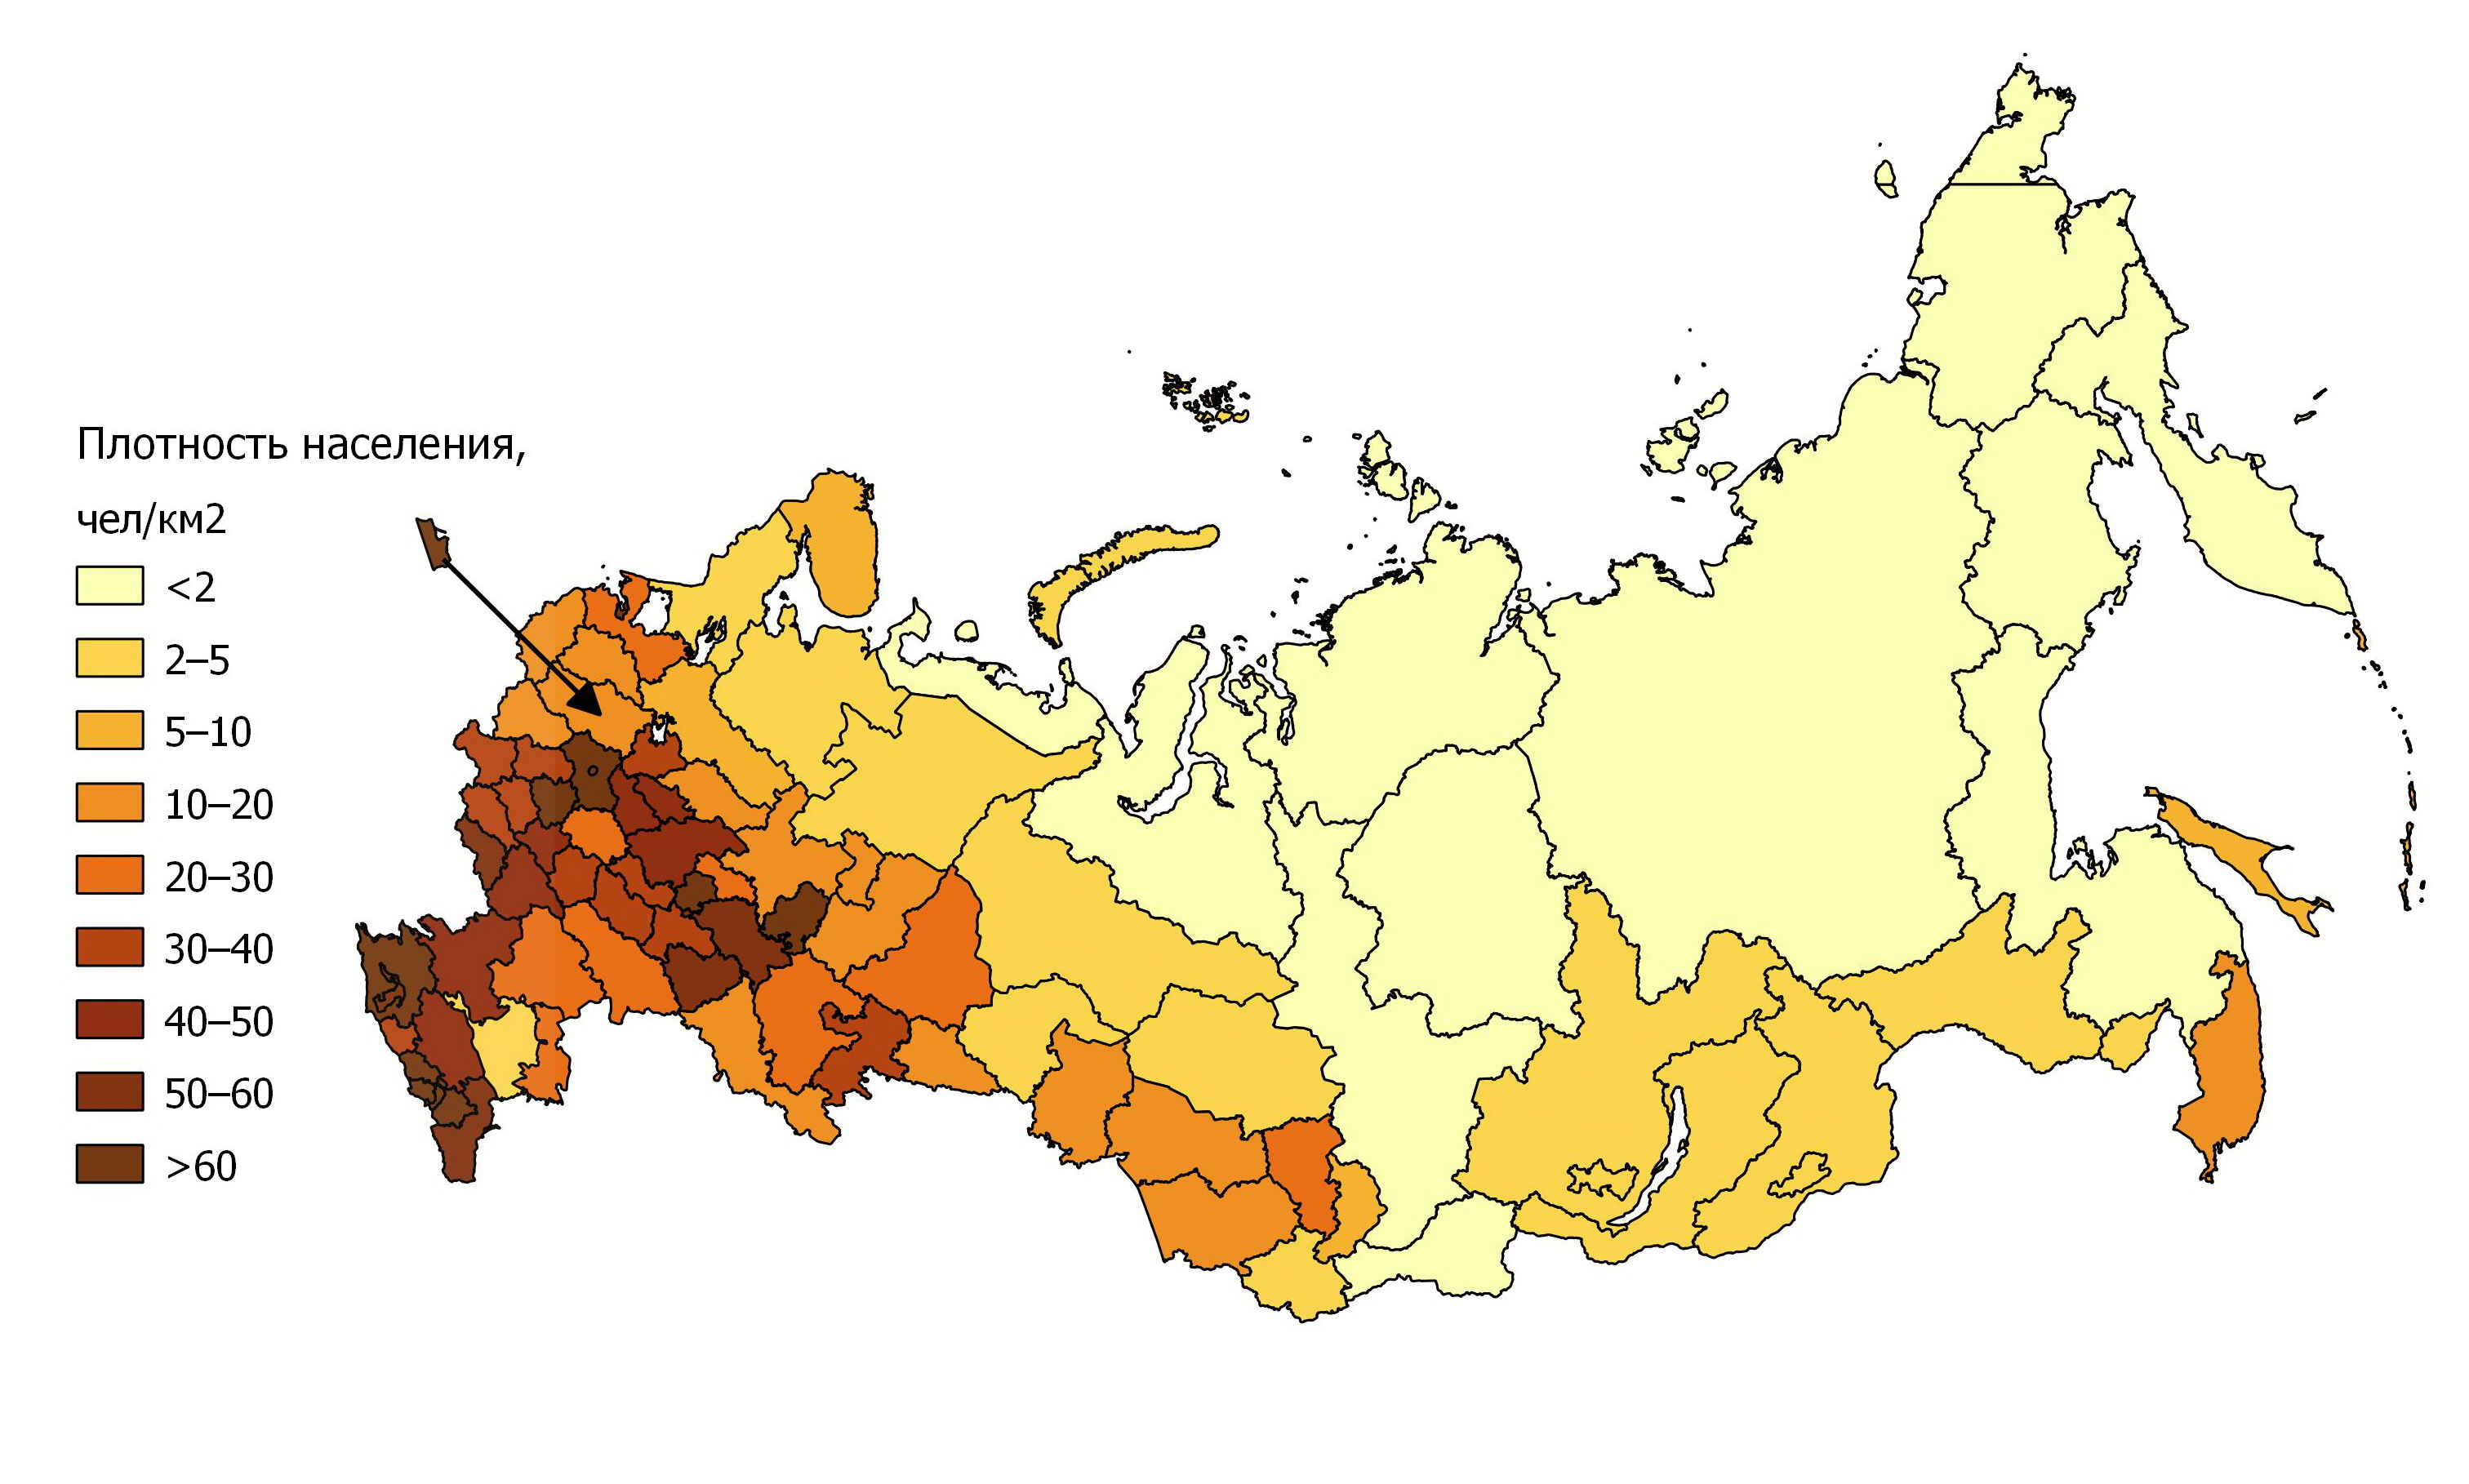 http://upload.wikimedia.org/wikipedia/commons/7/74/Russia%27s_population_density_by_region.jpg